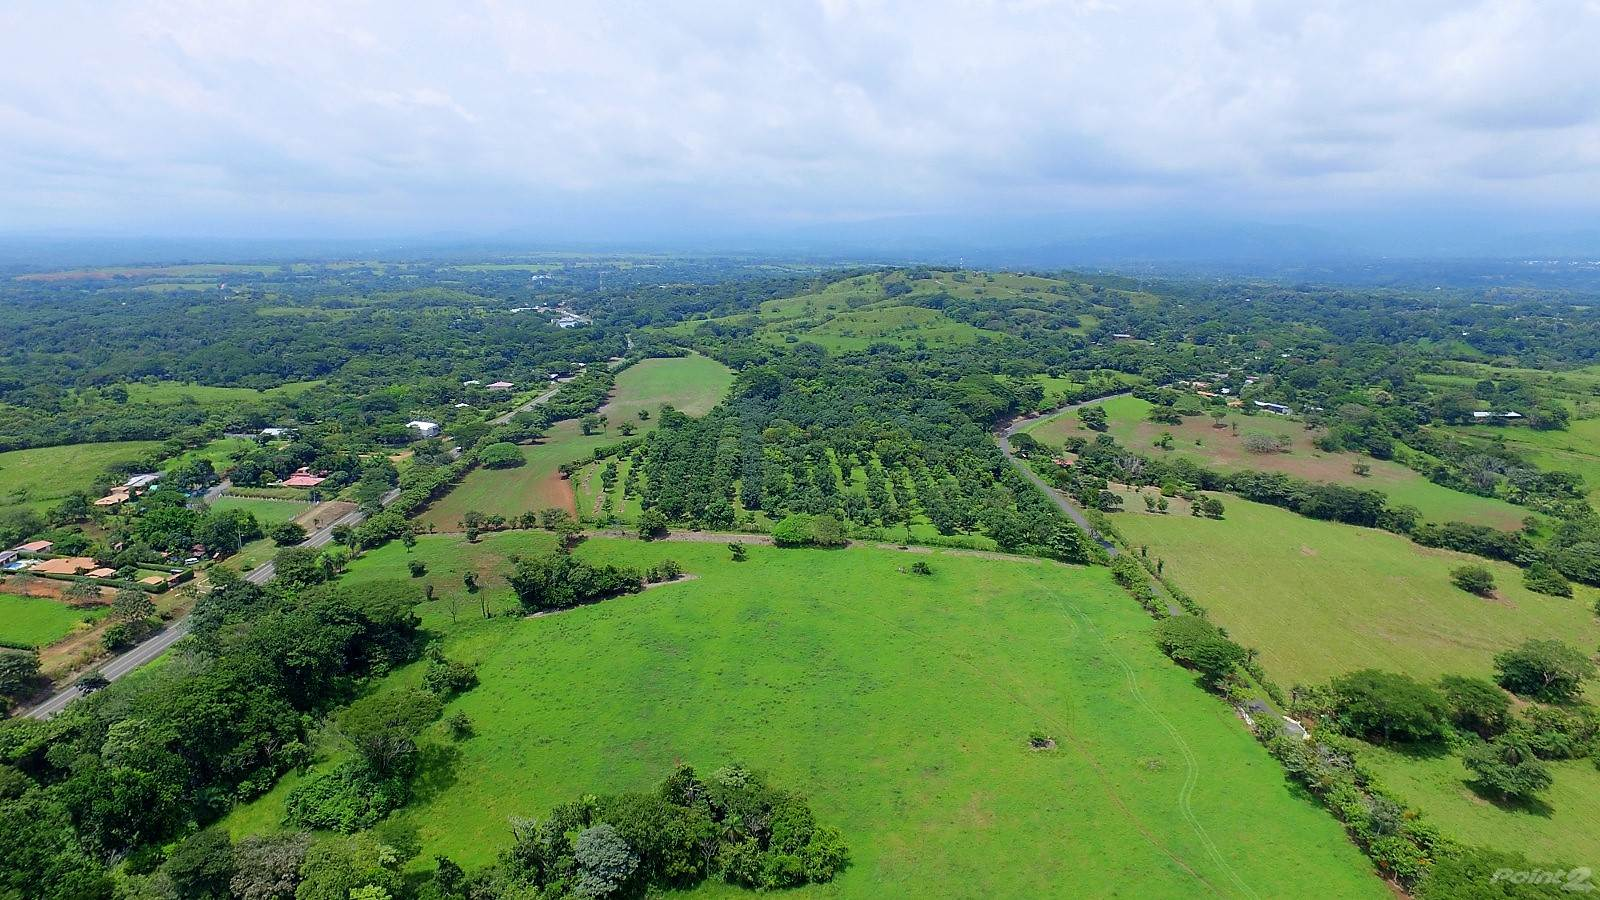 Fattoria in vendita in RA1893 Land Investment close to future Int'l airport Orotina @ only 30min drive from Jaco, Orotina Coyolar, Alajuela ,23001  , Costa Rica